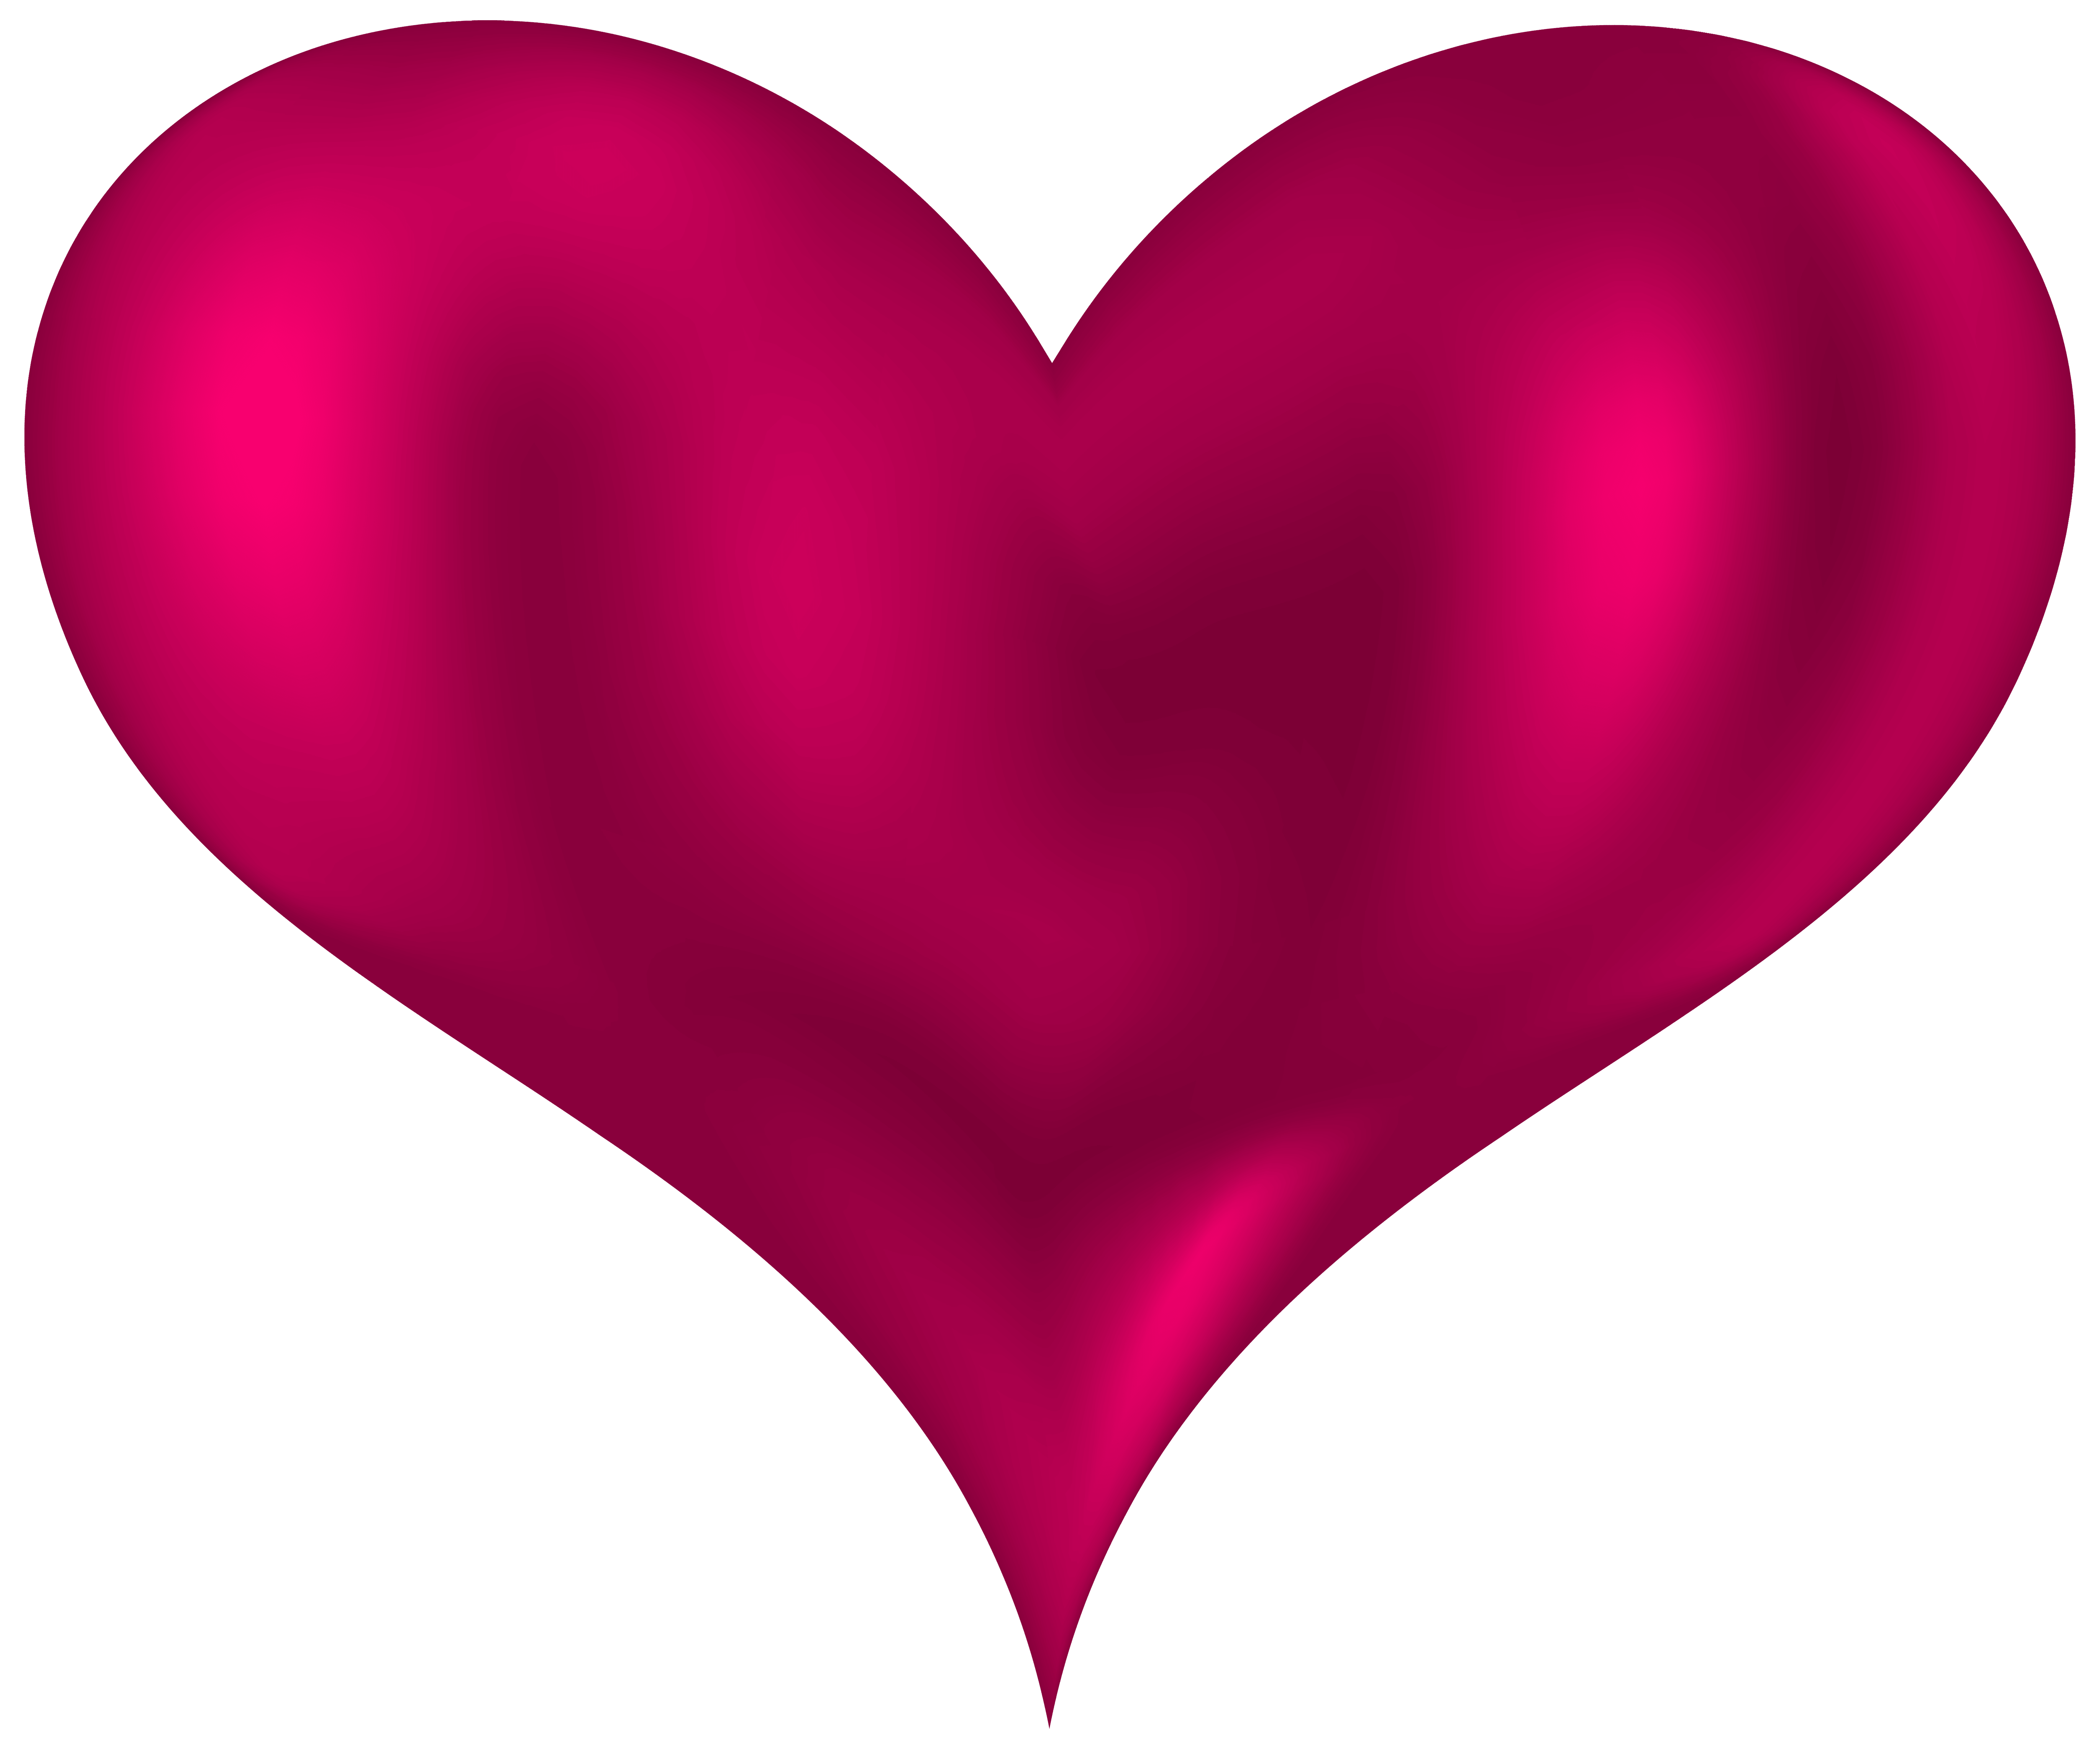 Heart thank you clipart clip royalty free download Beautiful Heart Pink PNG Clipart clip royalty free download